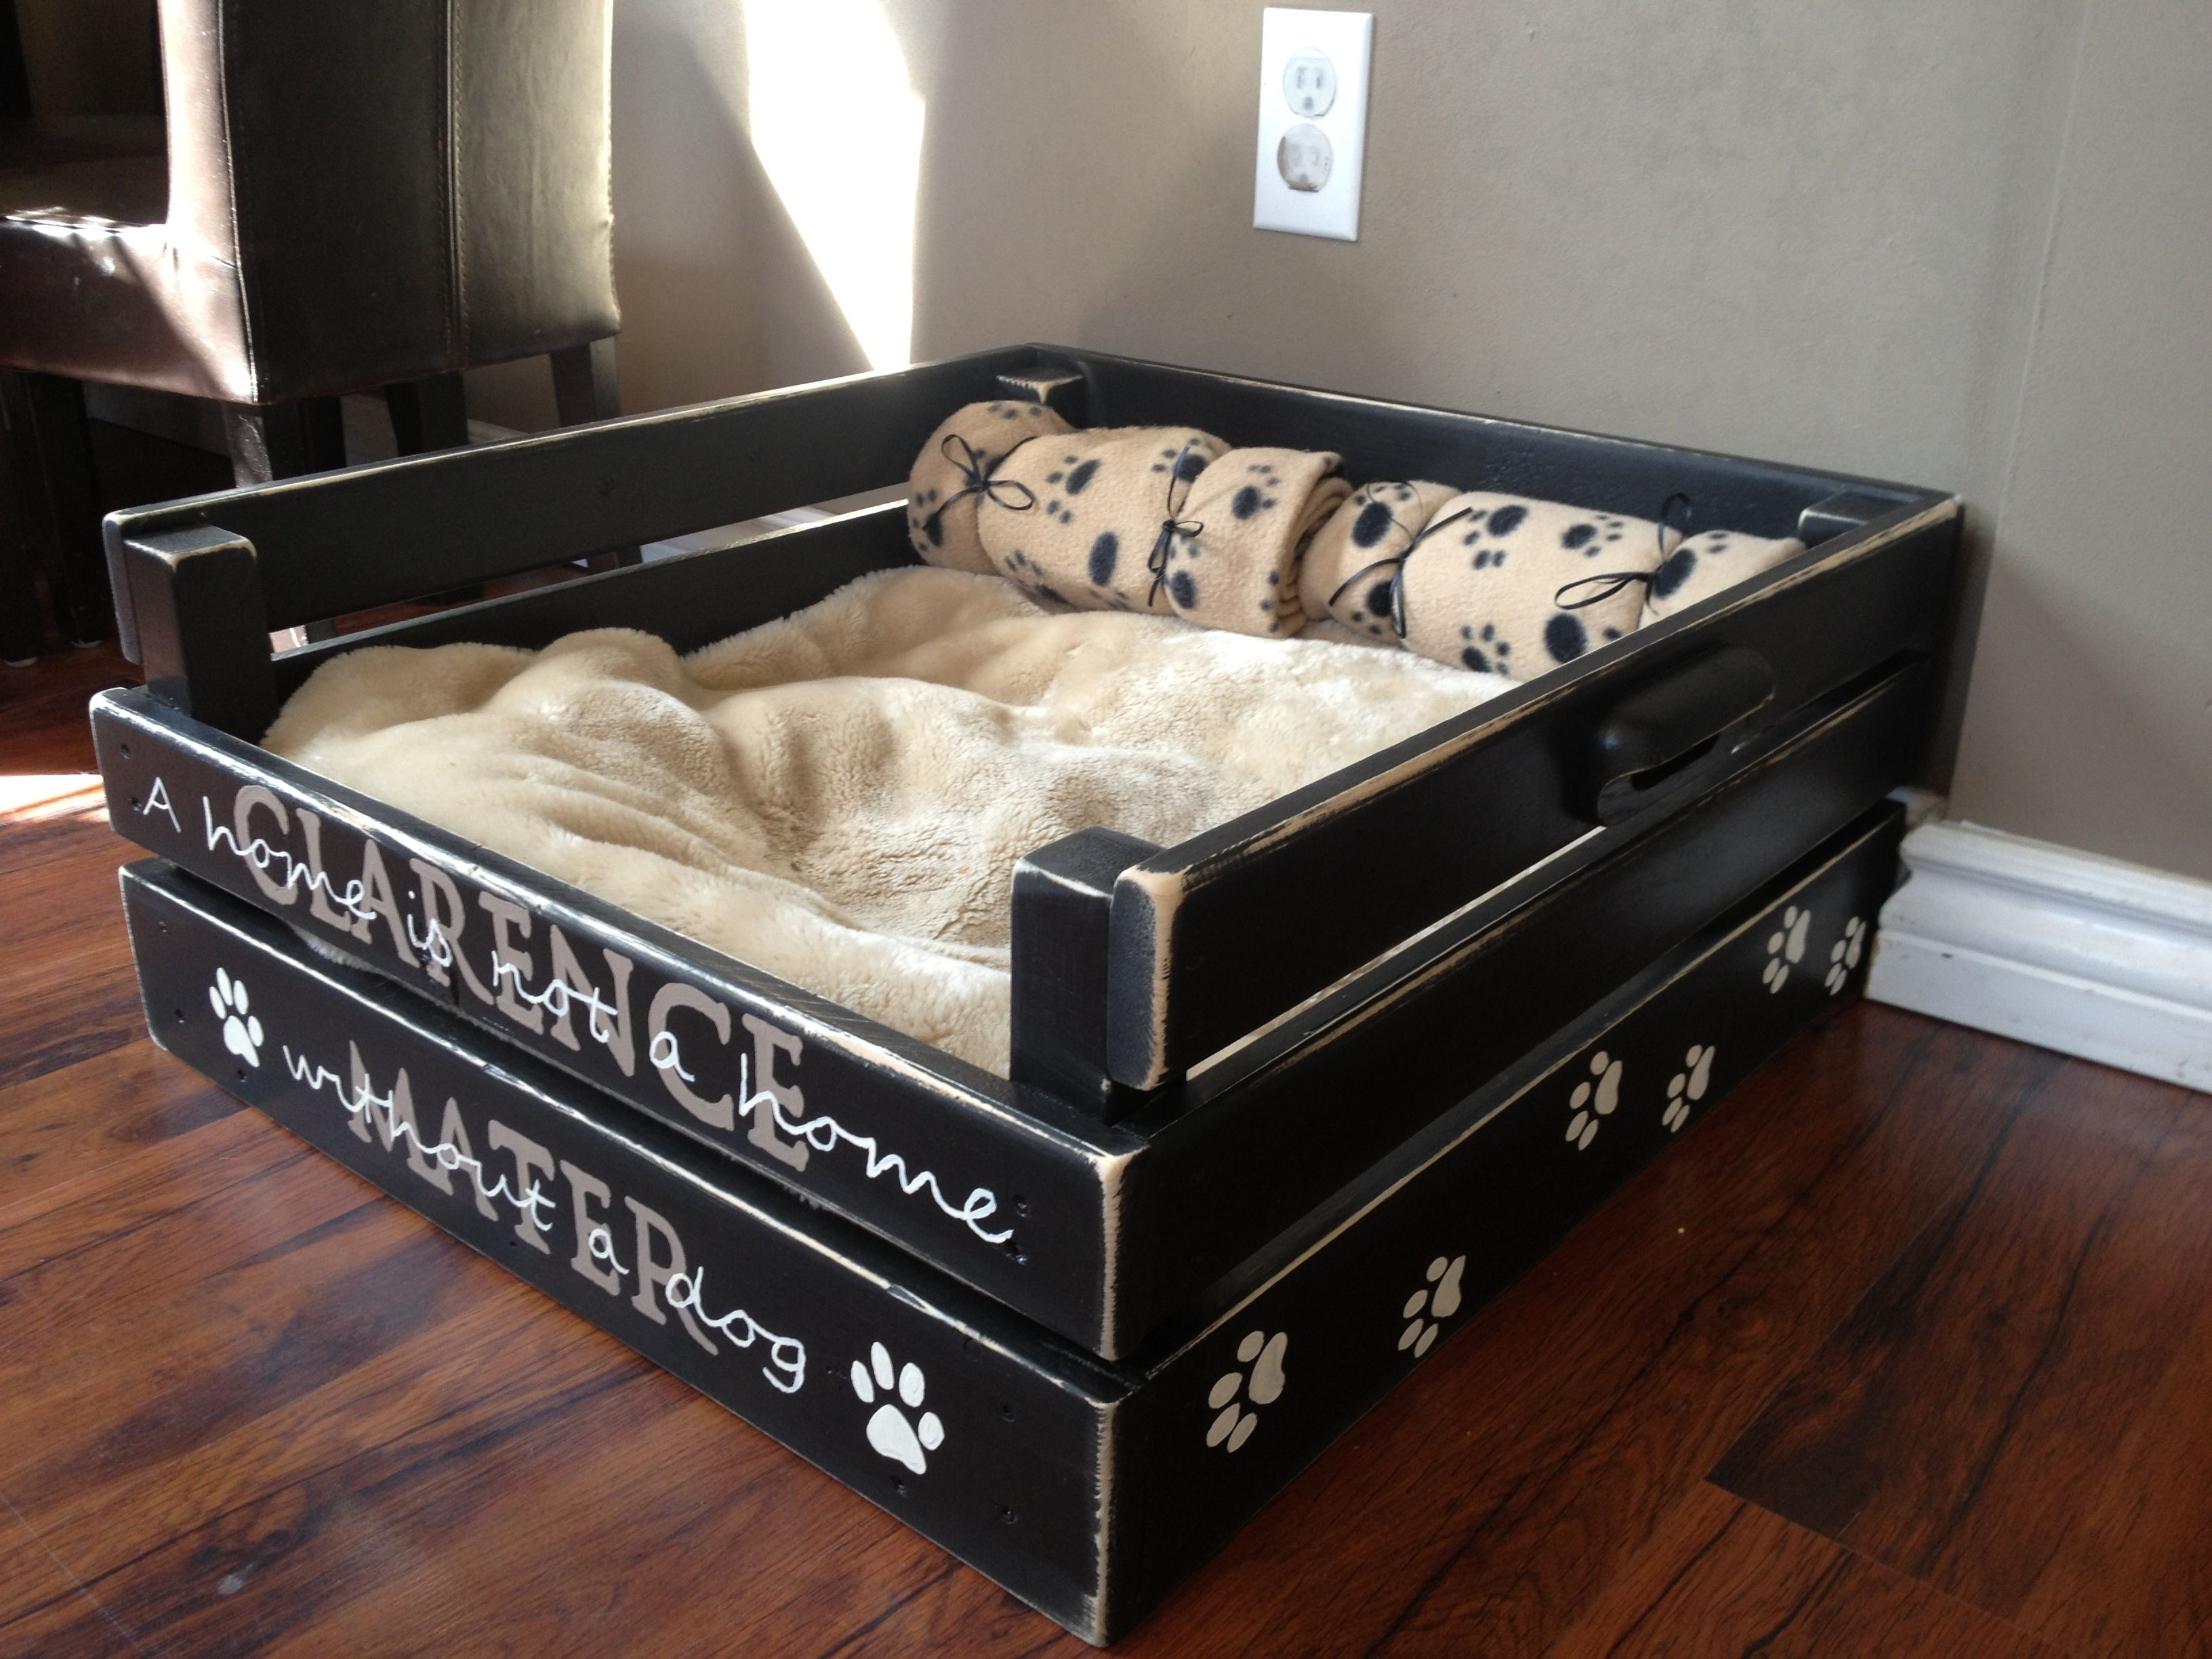 Dog Bed Do It Yourself Home Projects from Ana White